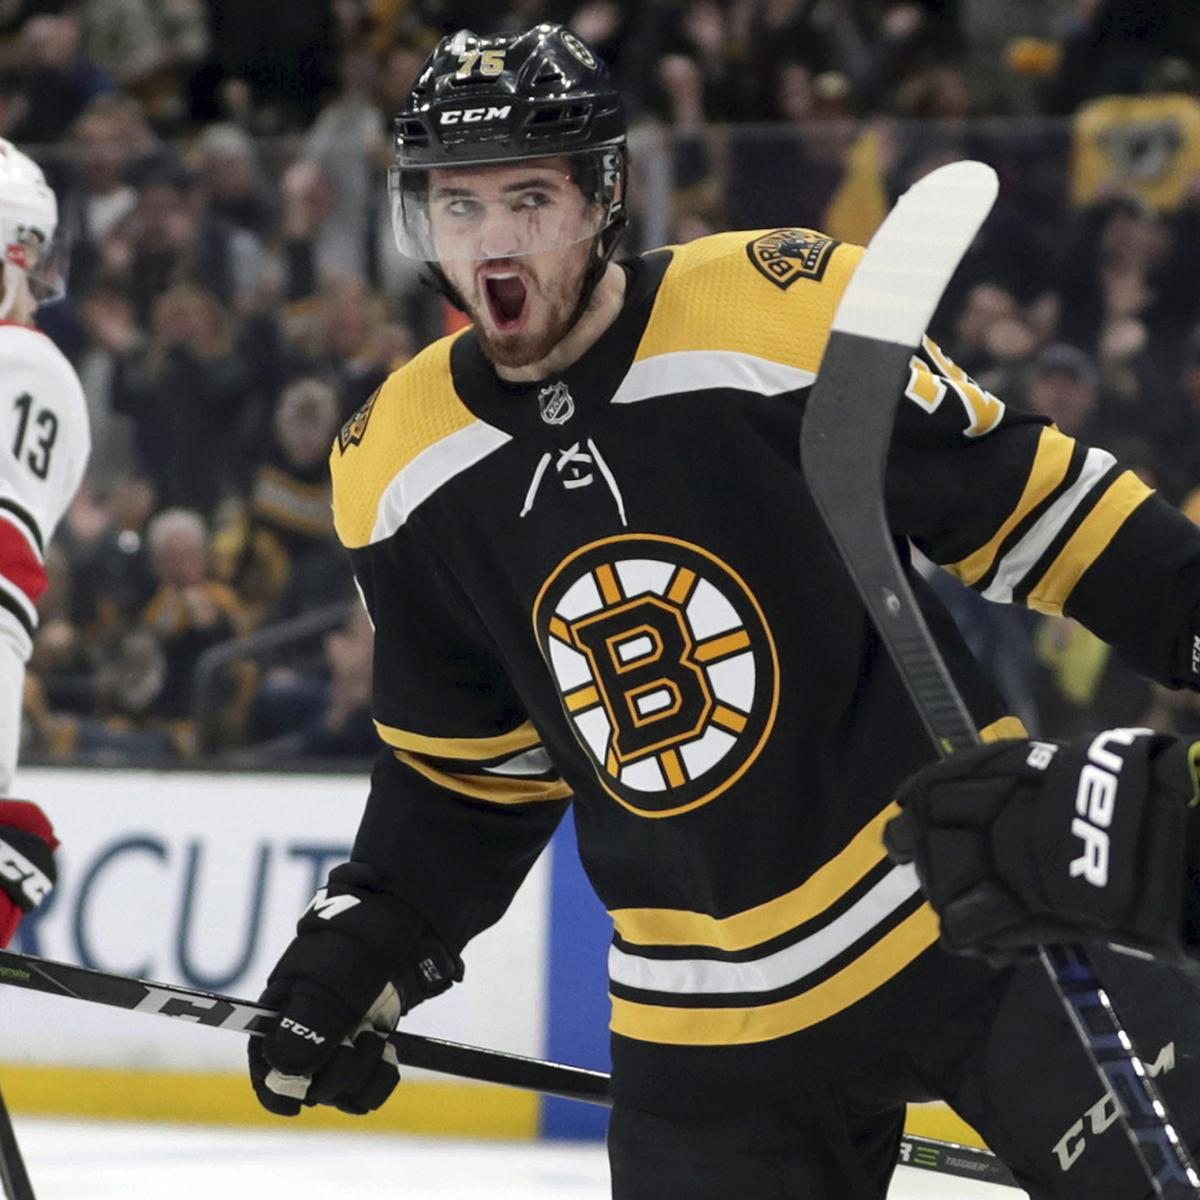 NHL Playoffs 2019: Latest Stanley Cup Scores, Standings